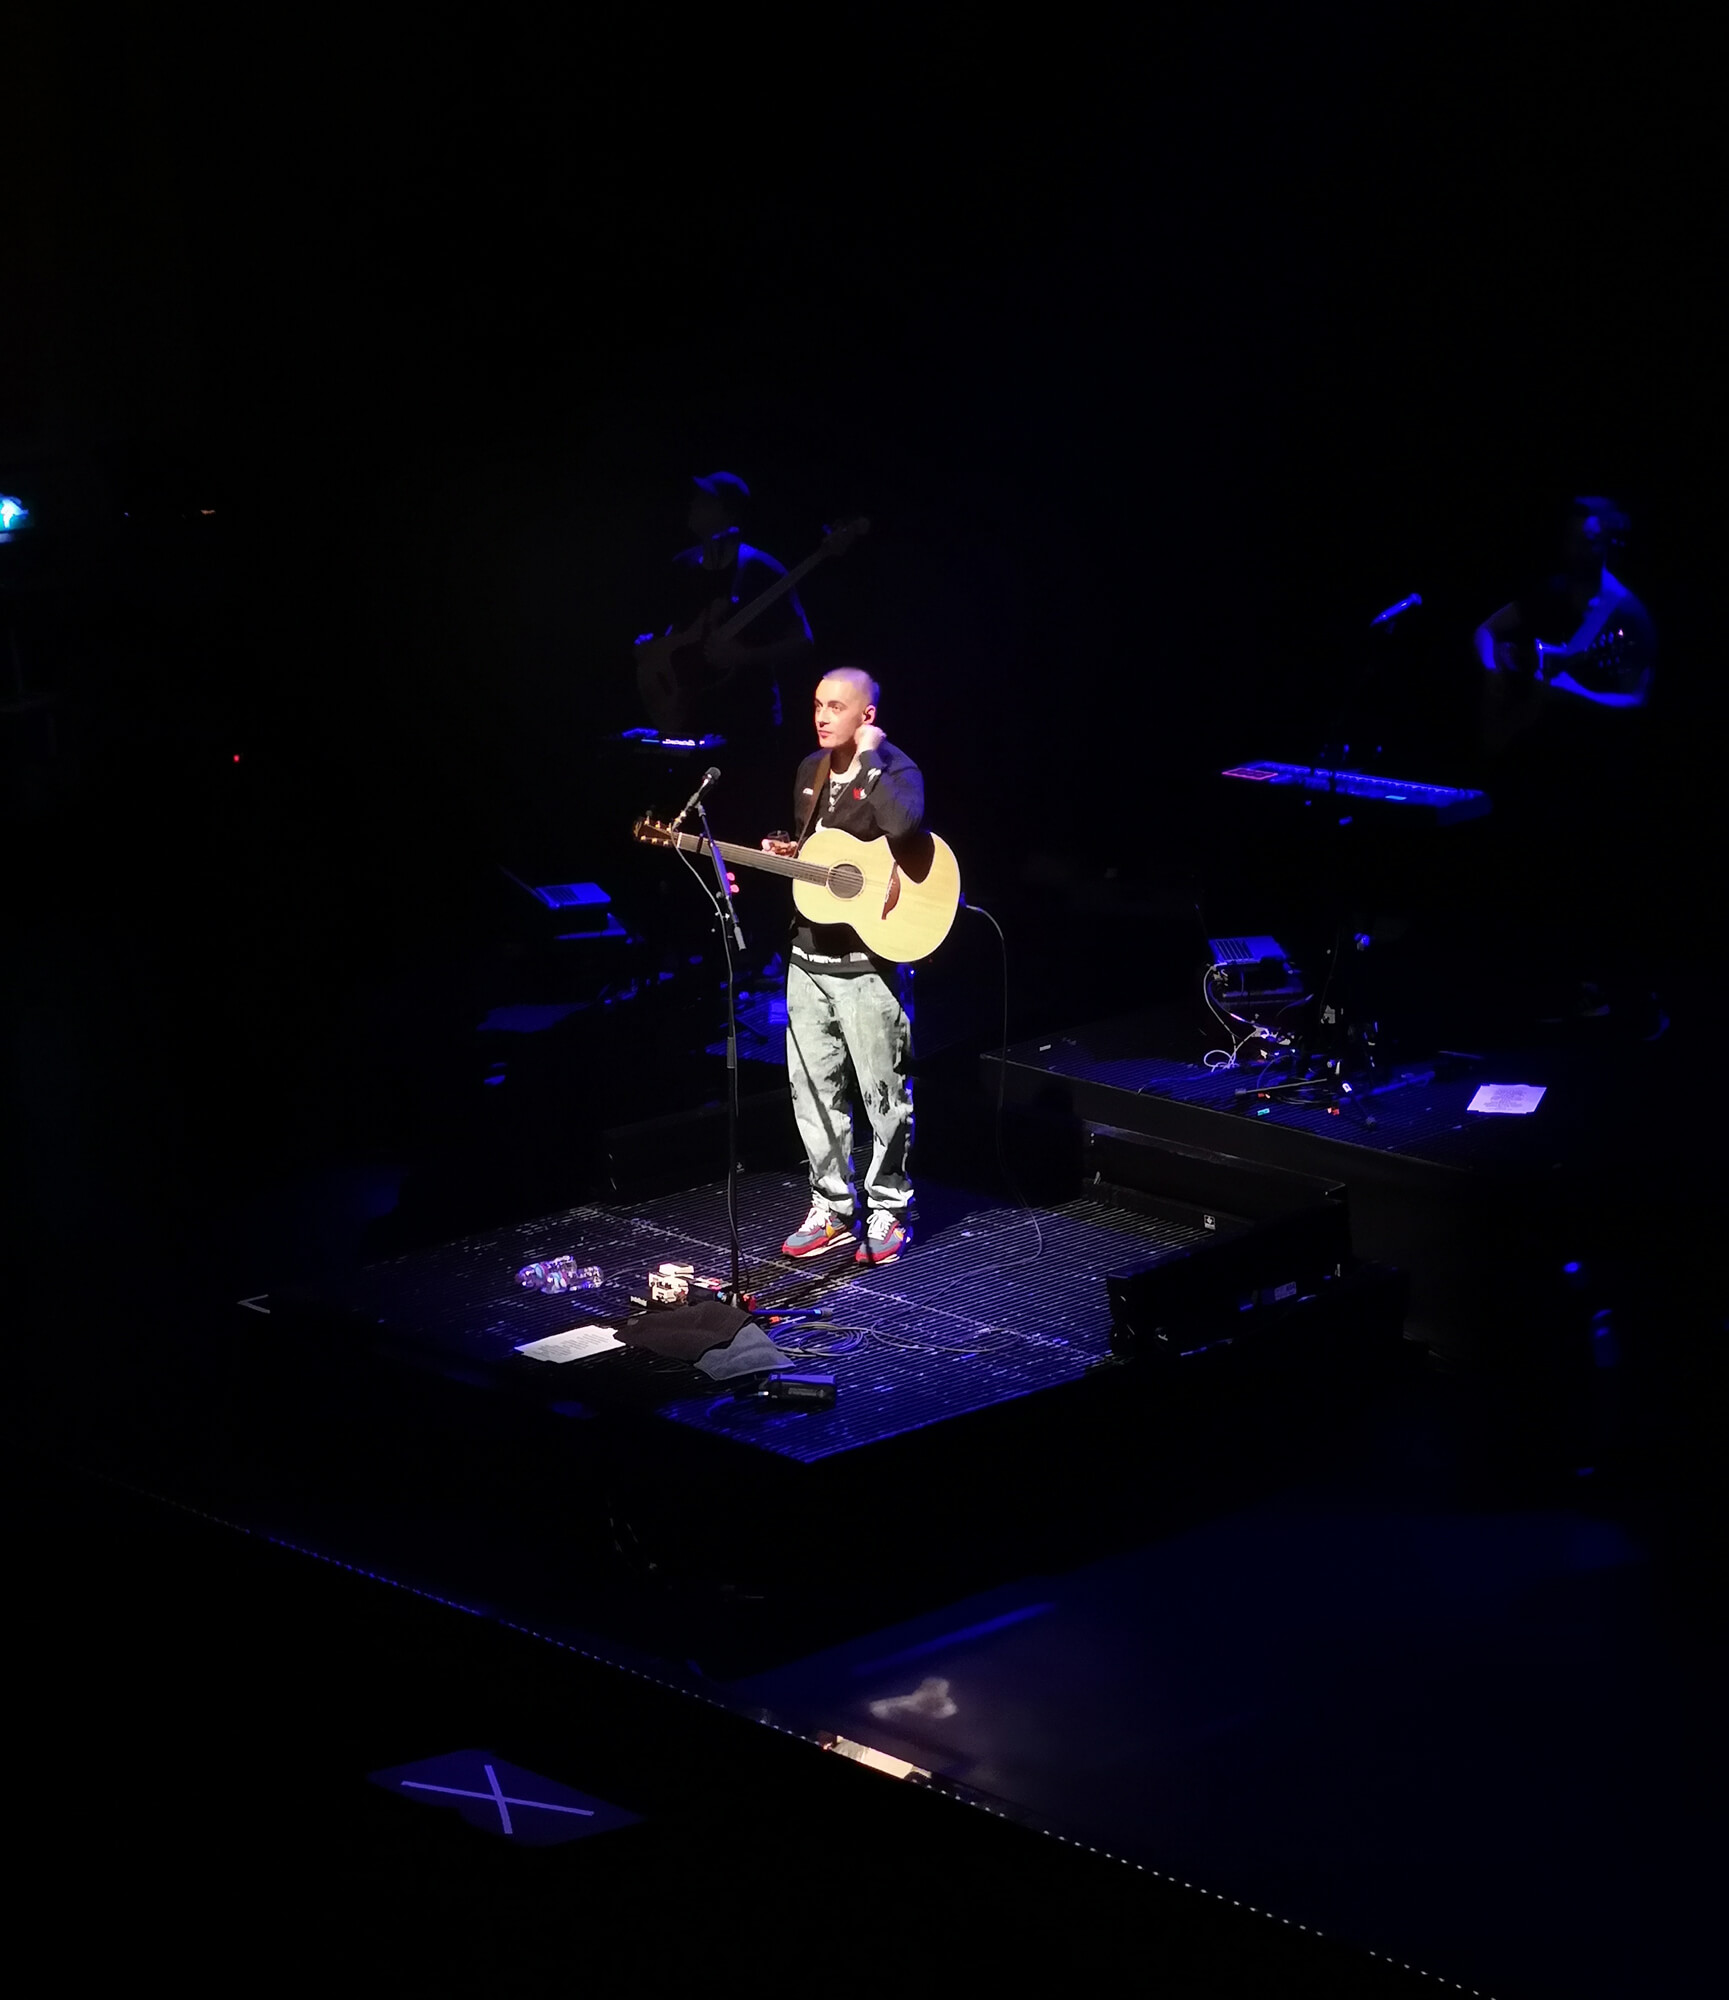 Dermot Kennedy onstage at The Usher Hall in Edinburgh.